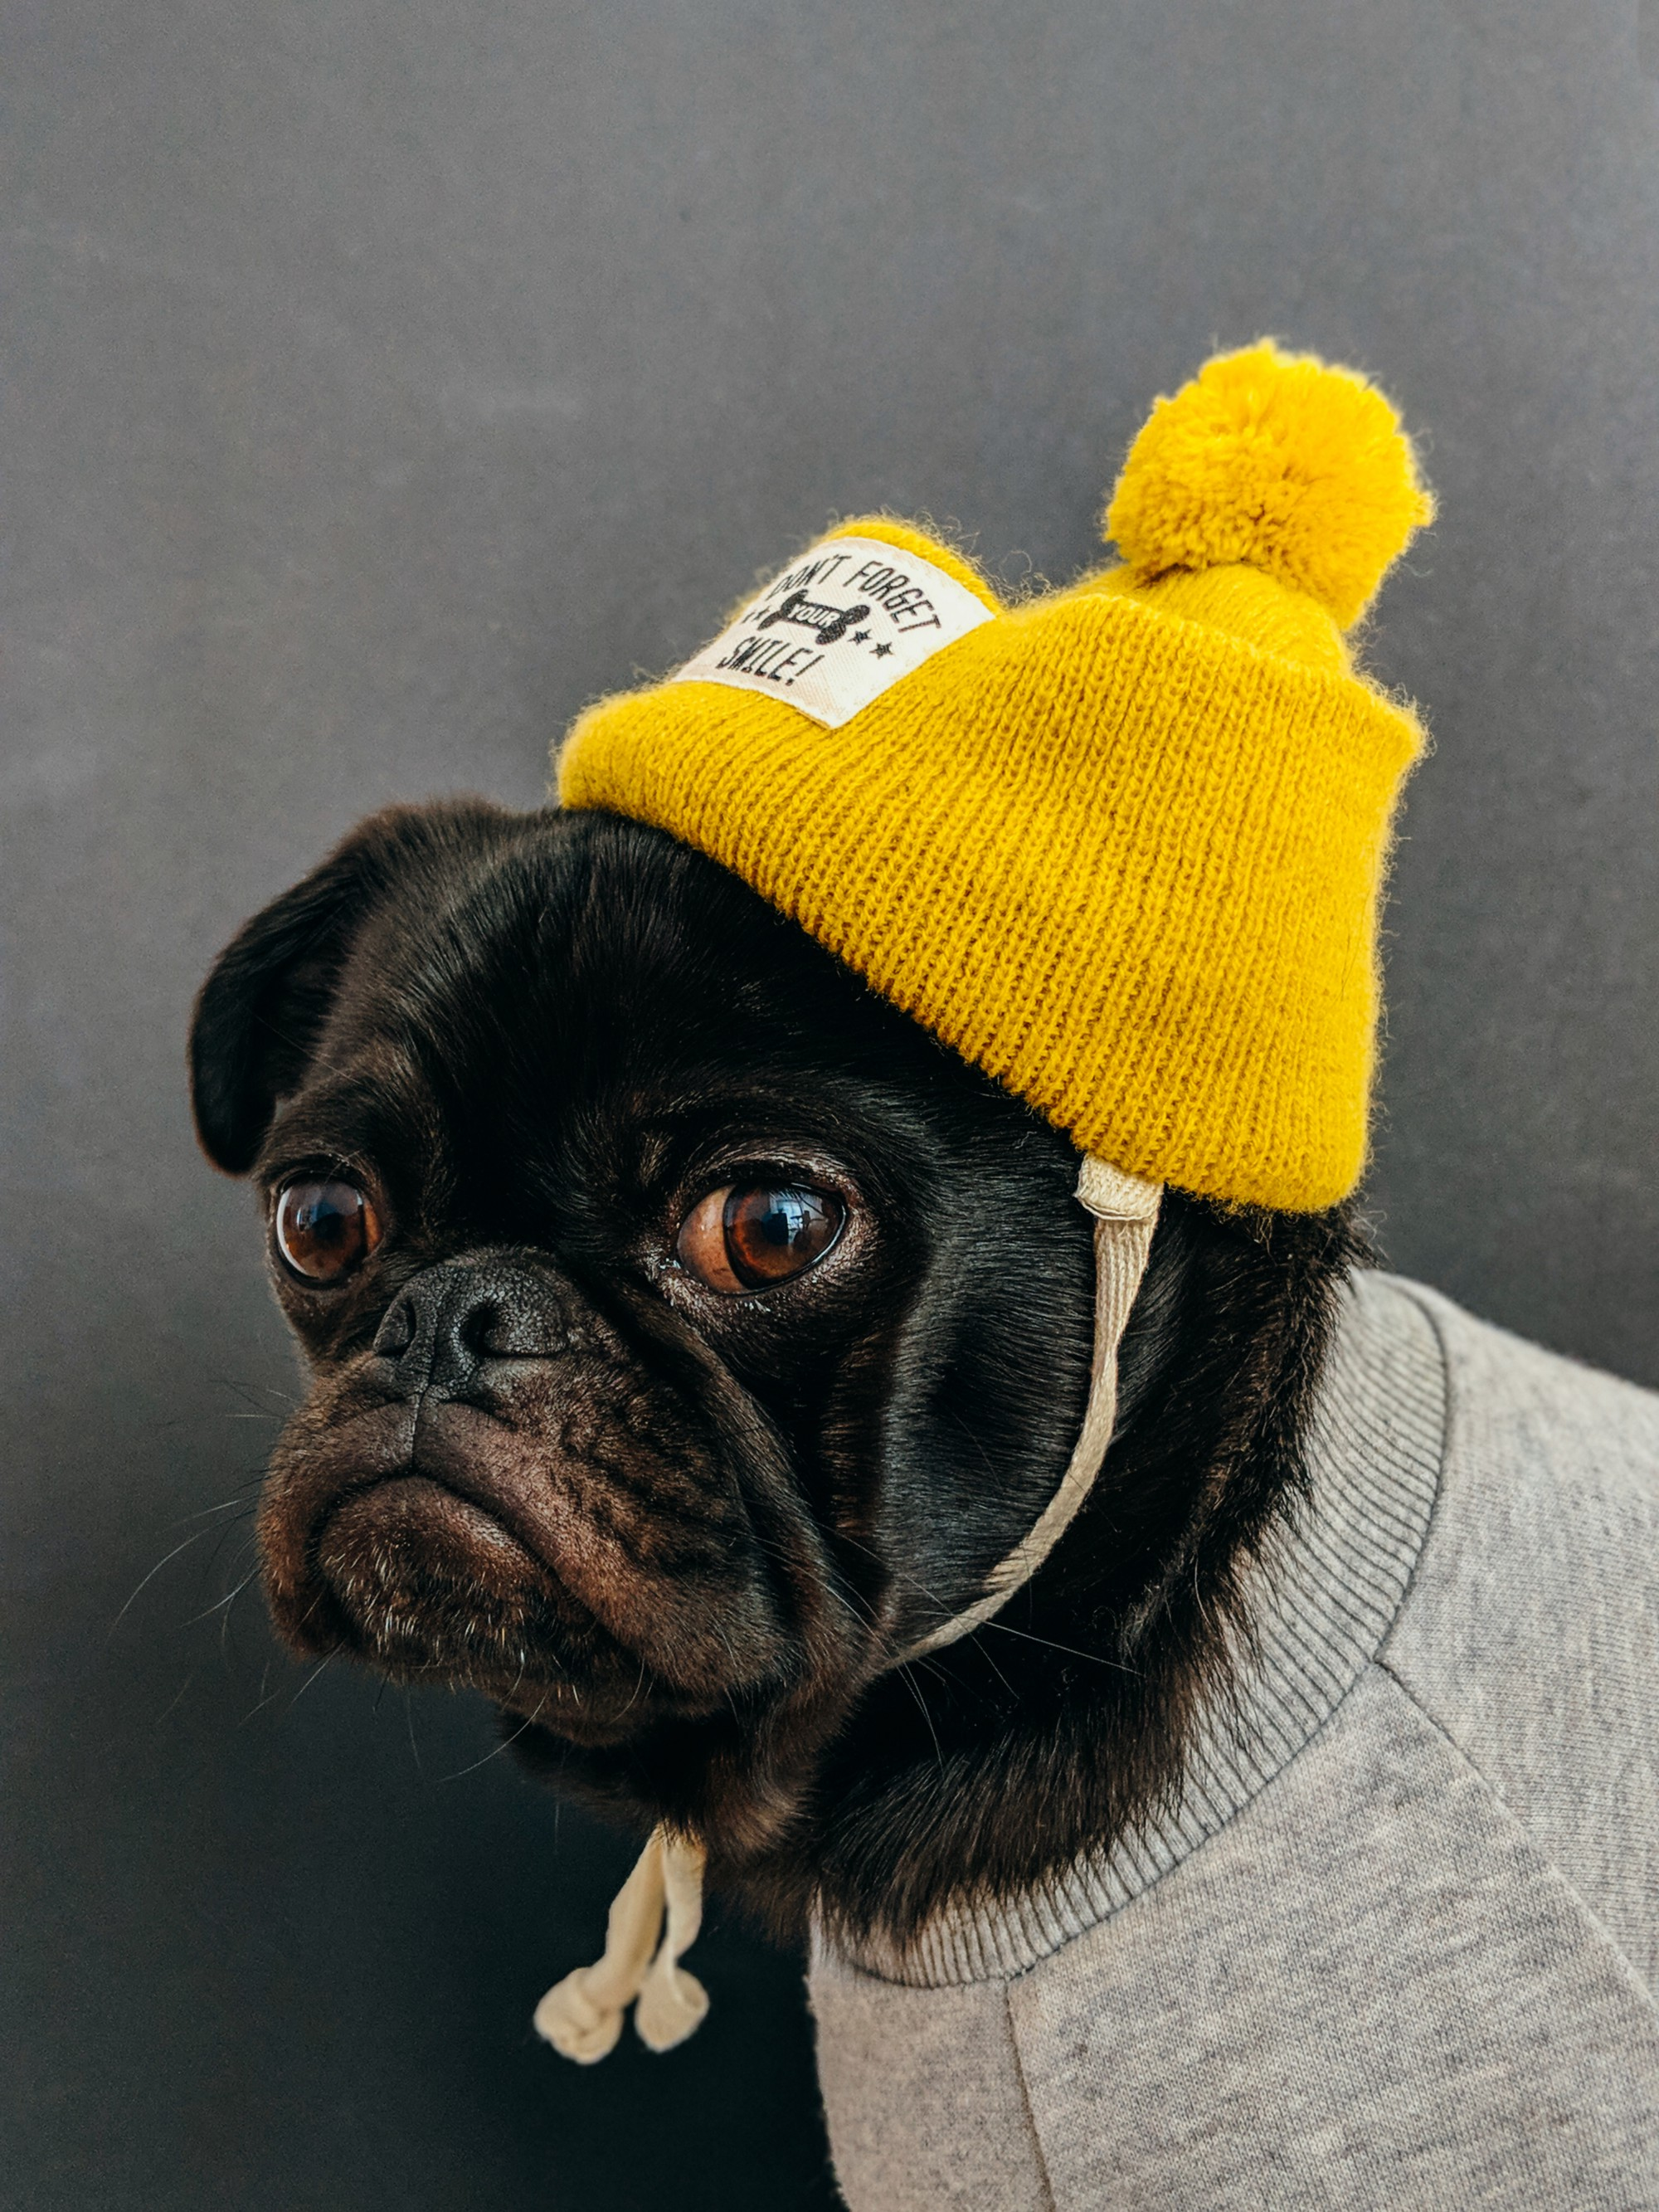 A pug wearing a bright yellow toque